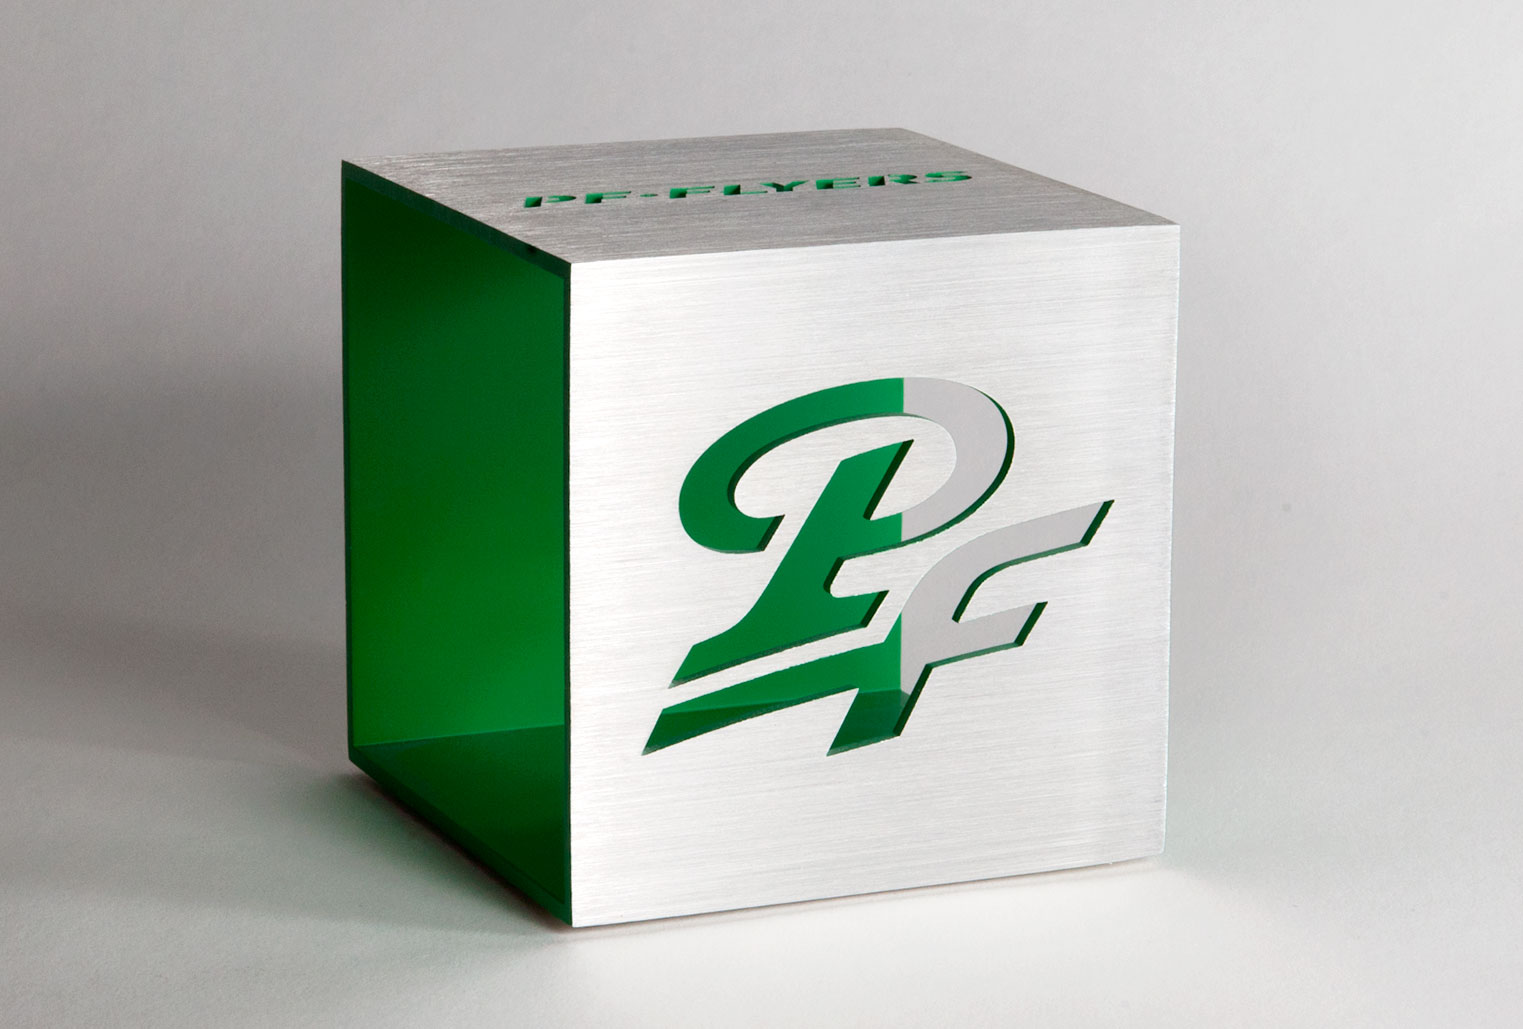 image of PF Flyers logo on paper block